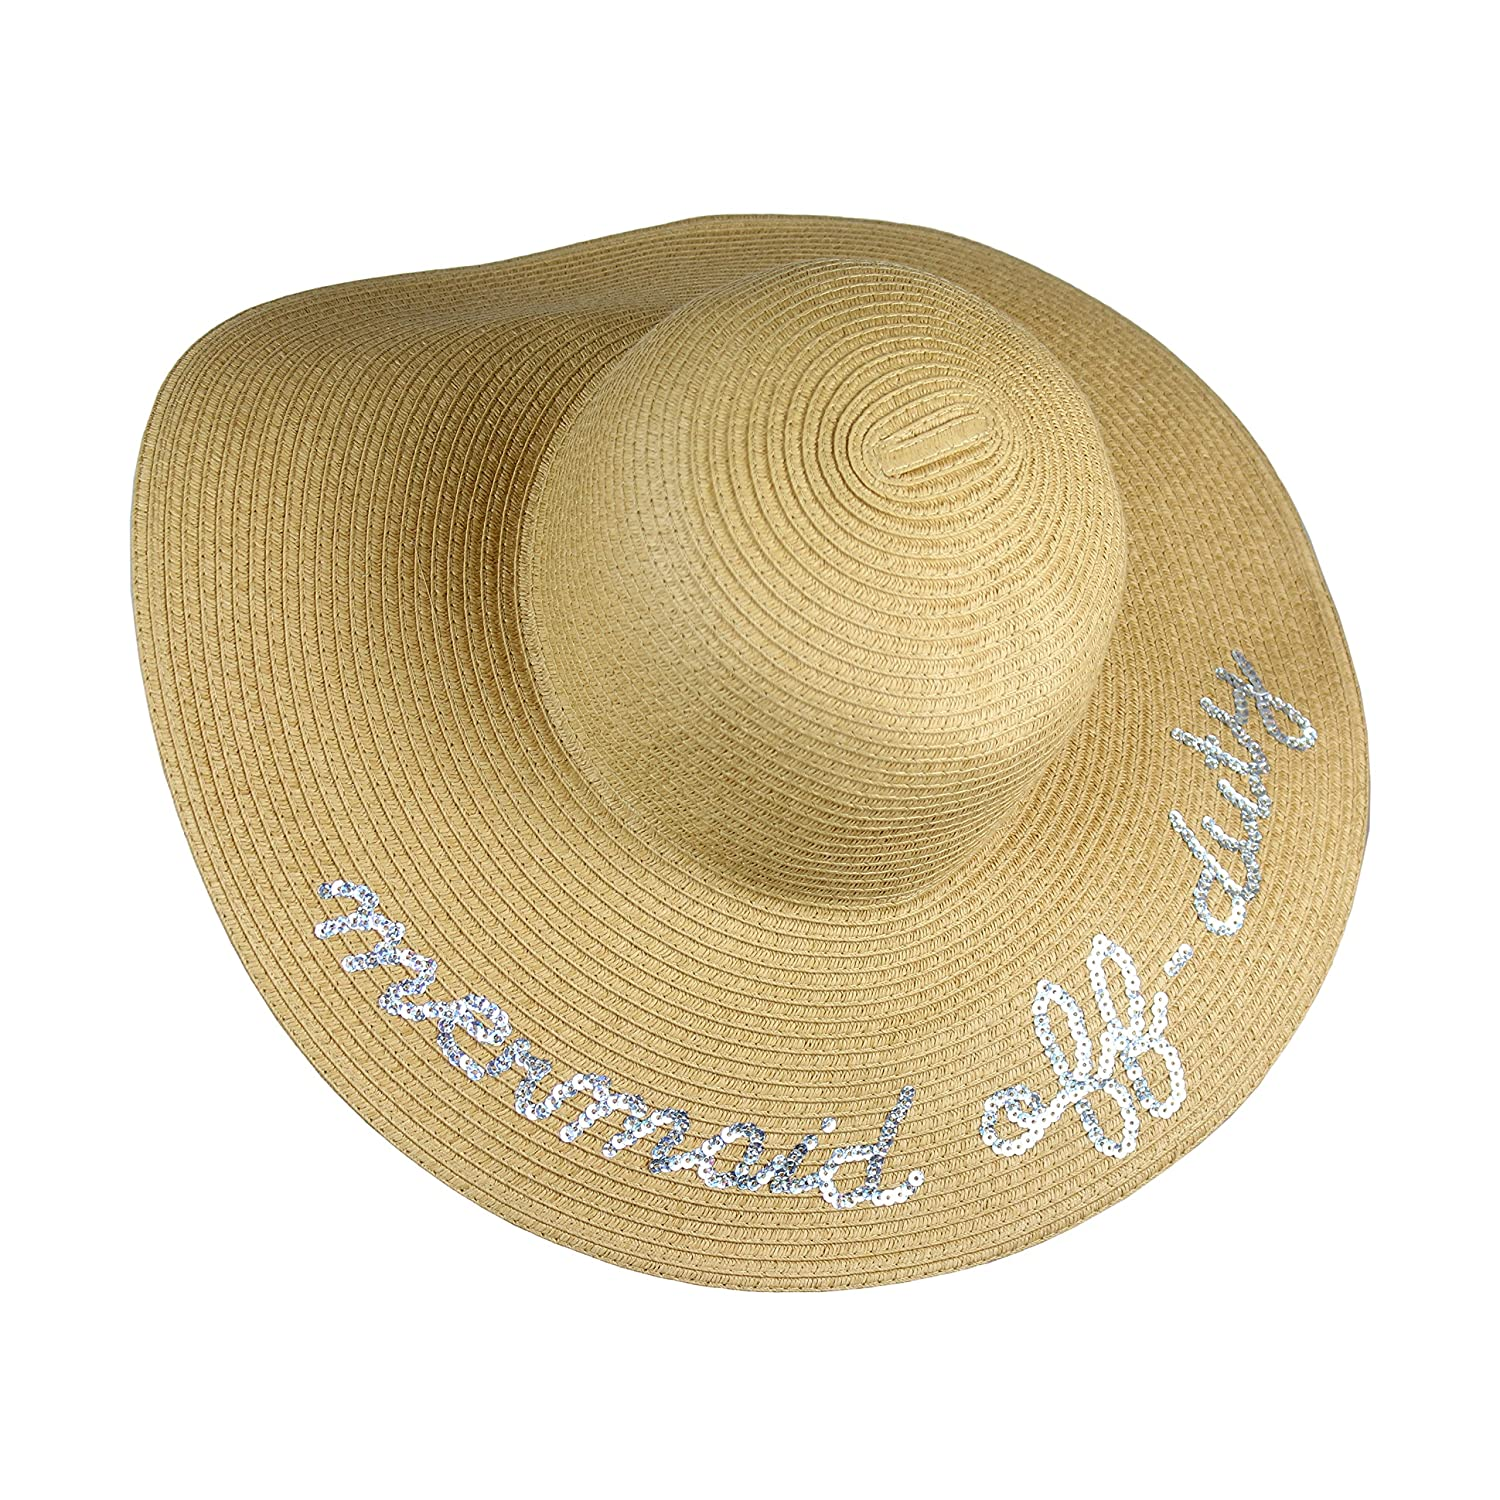 061e721a0 UPF 50+ Large Straw Floppy Sun Hat- Weaved Tweed Crushable Wide Brim Beach  Cap with Sequin Quote 'Mermaid Off-Duty